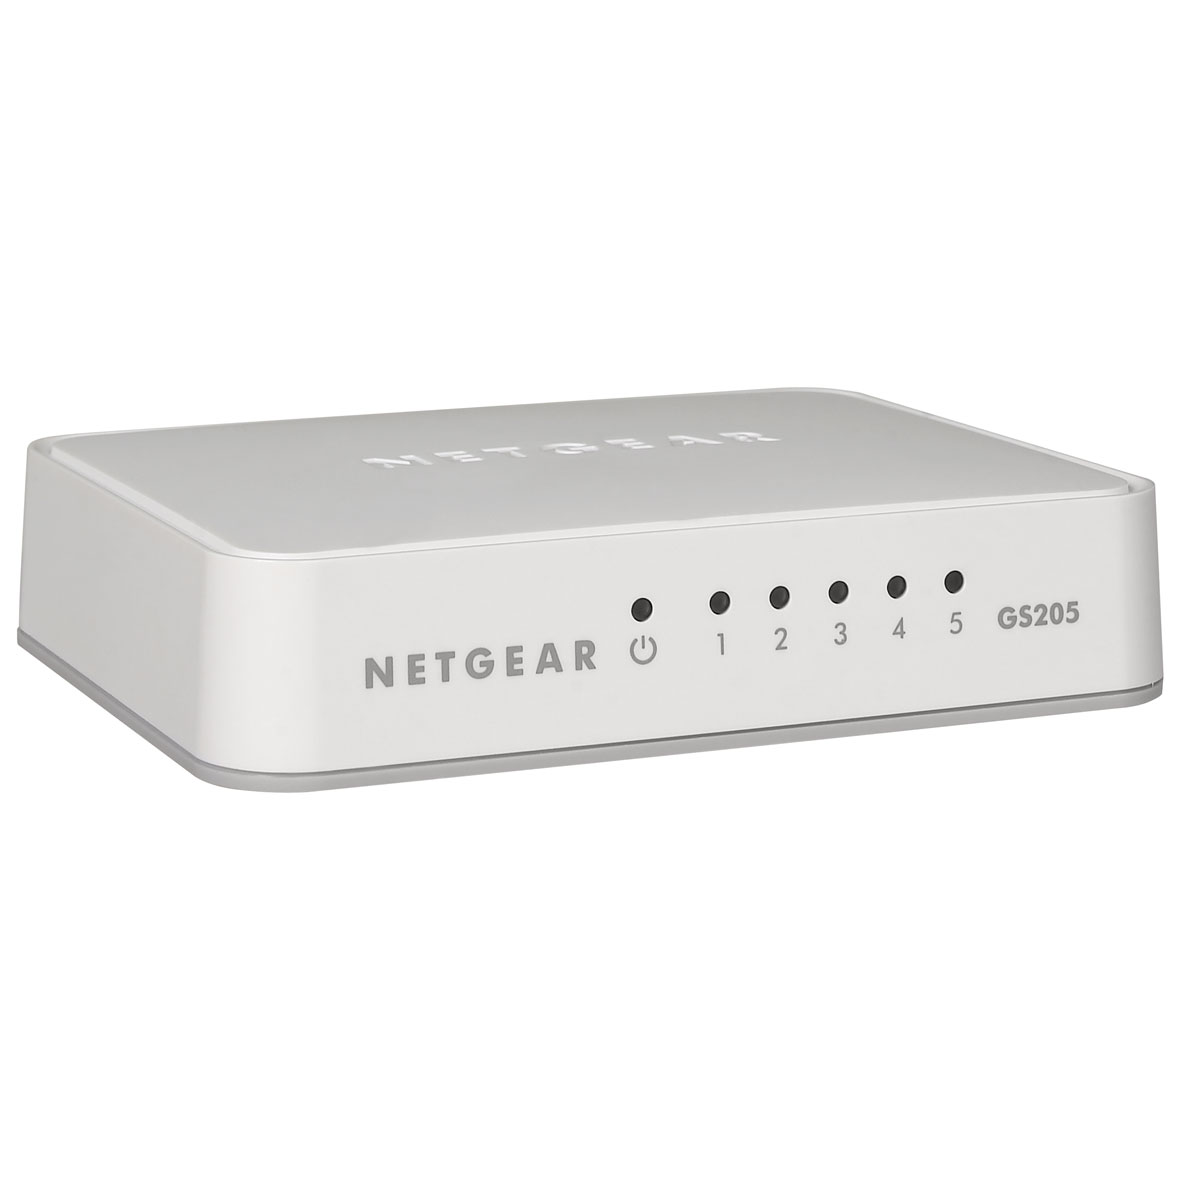 Switch 5 ports Gigabit 10/100/1000 Mbps GS205